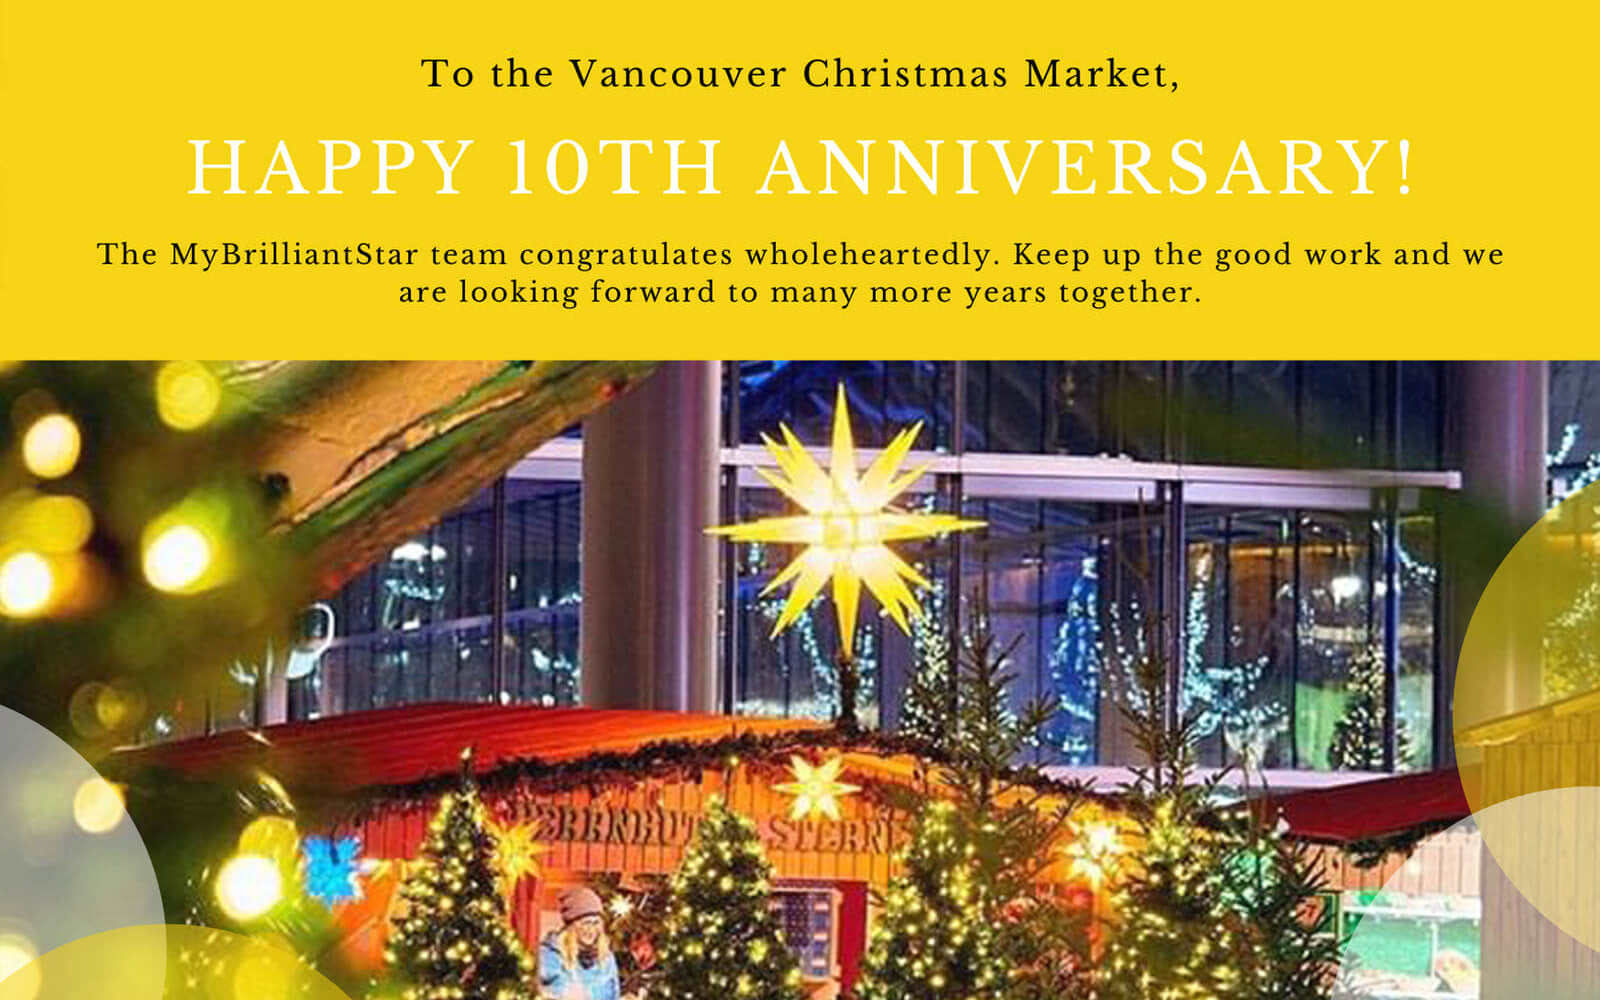 VANCOUVER CHRISTMAS MARKET 2019